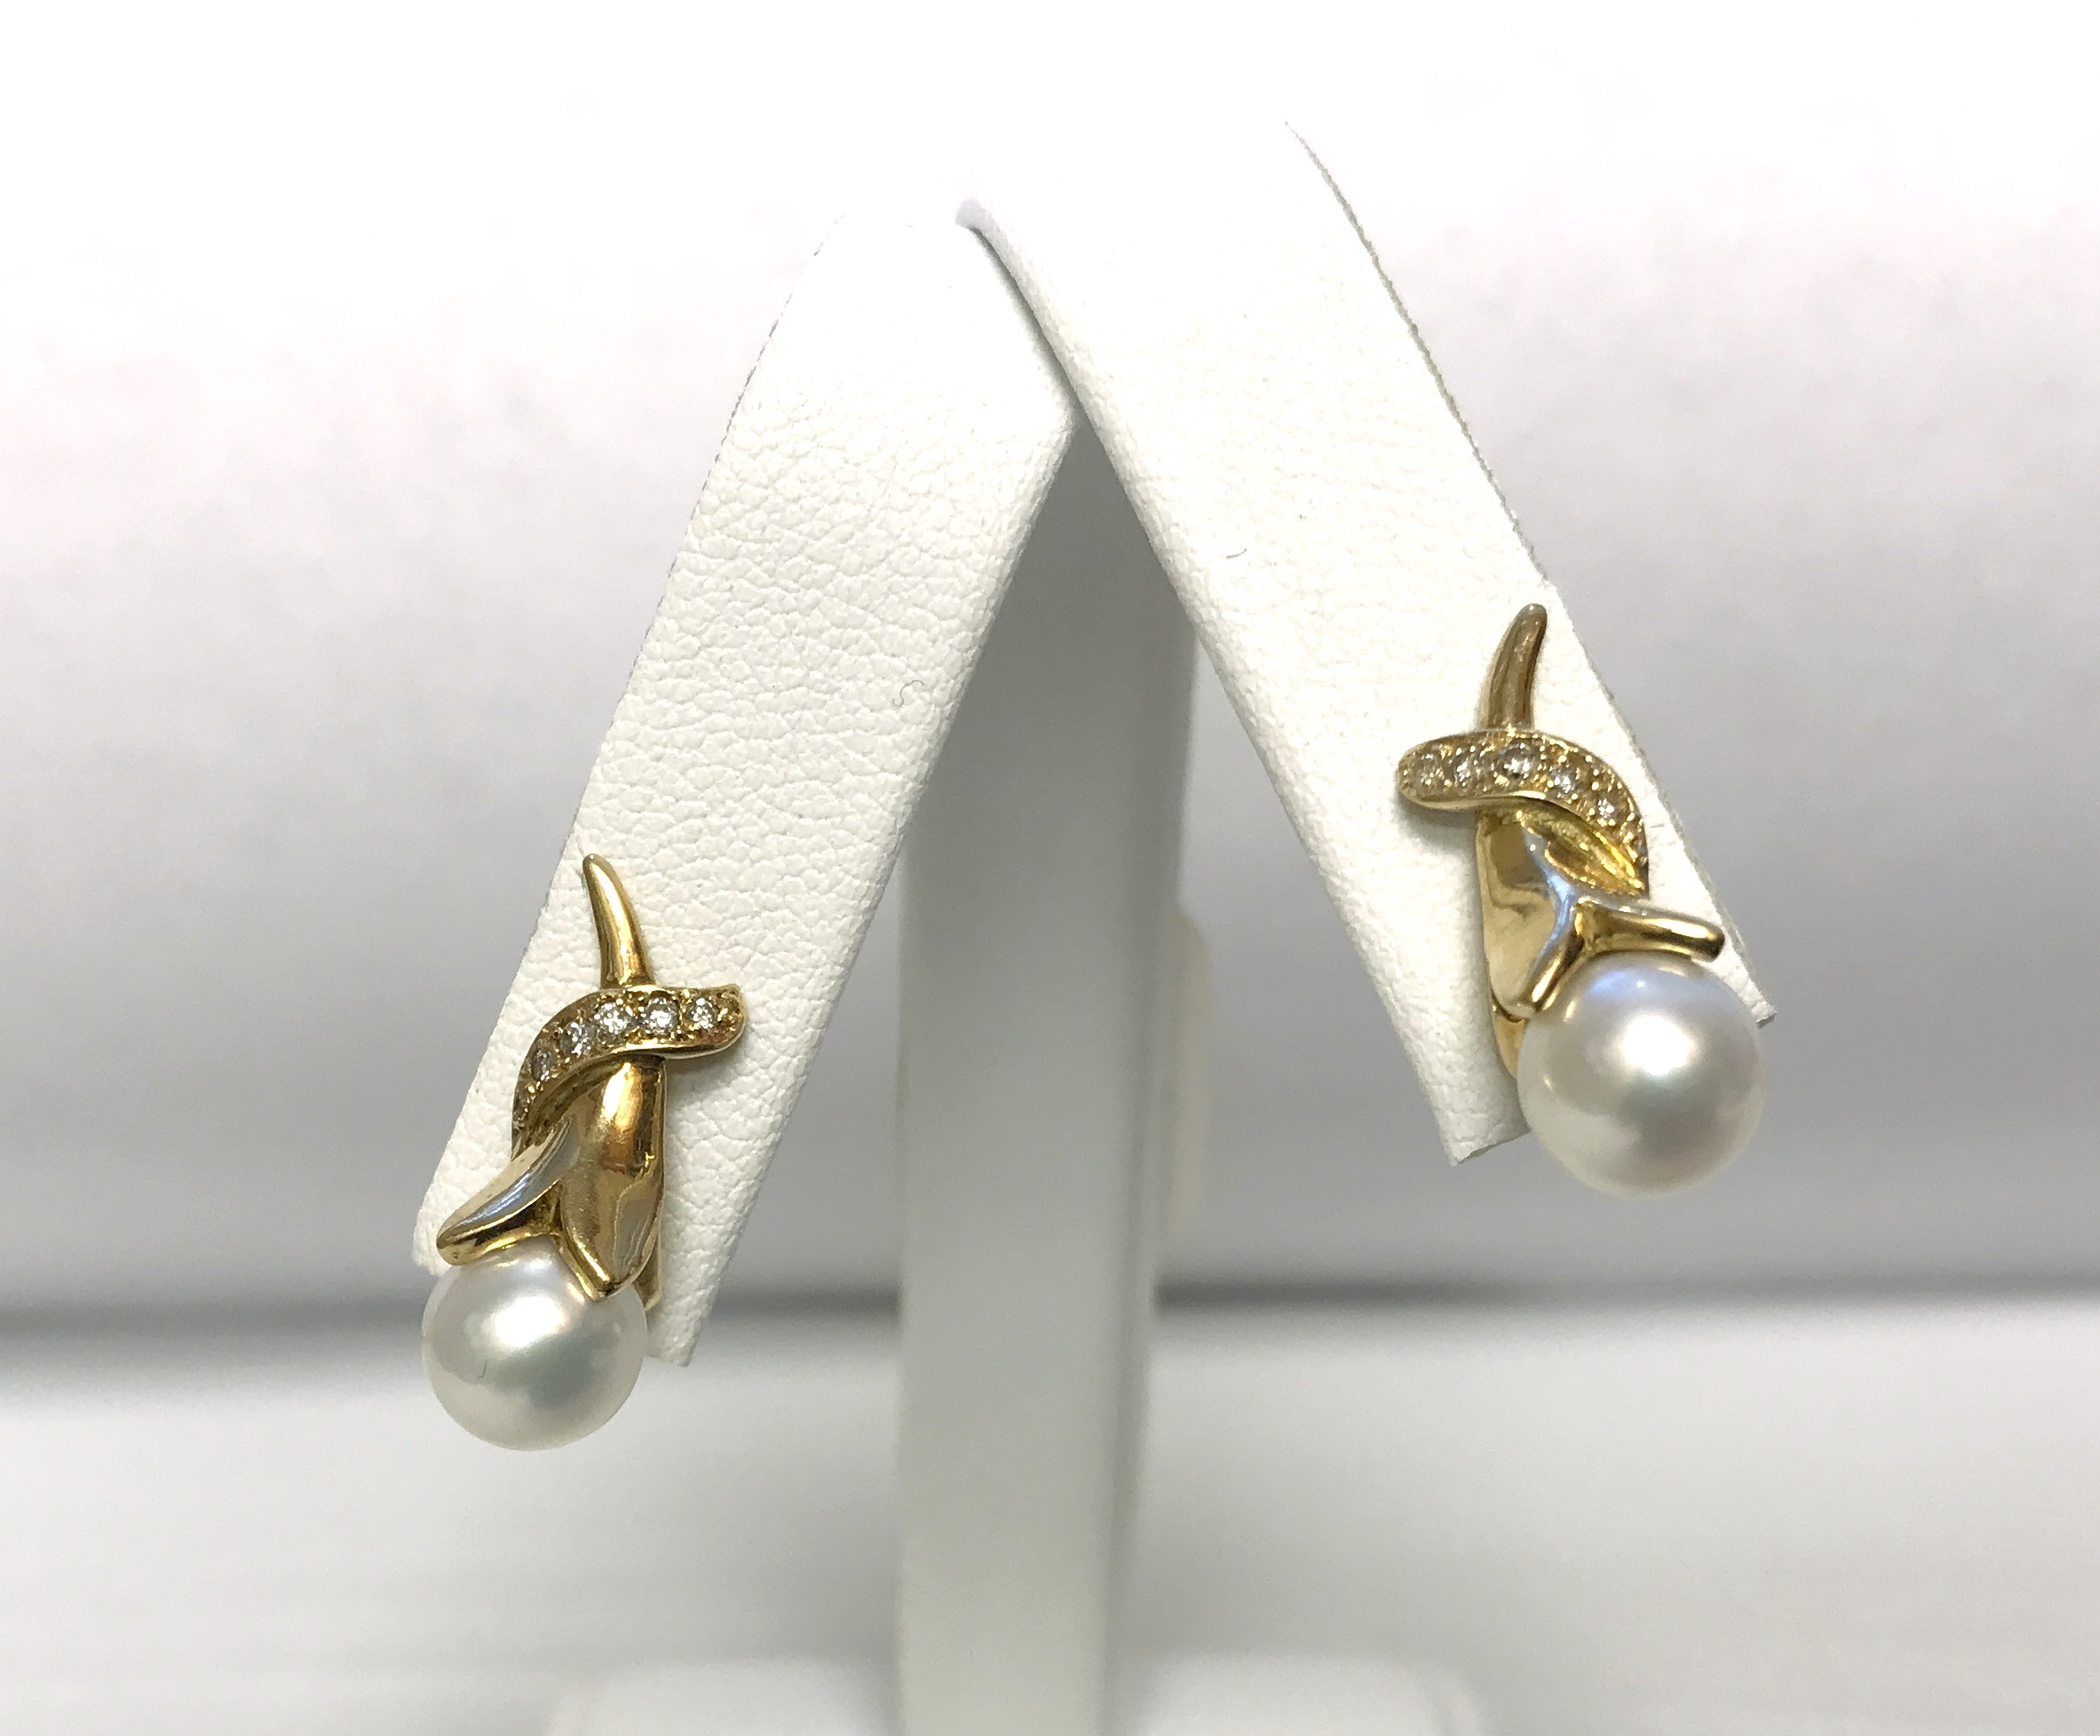 18K Yellow Gold 5.9g  with Diamonds and White Stone Earrings